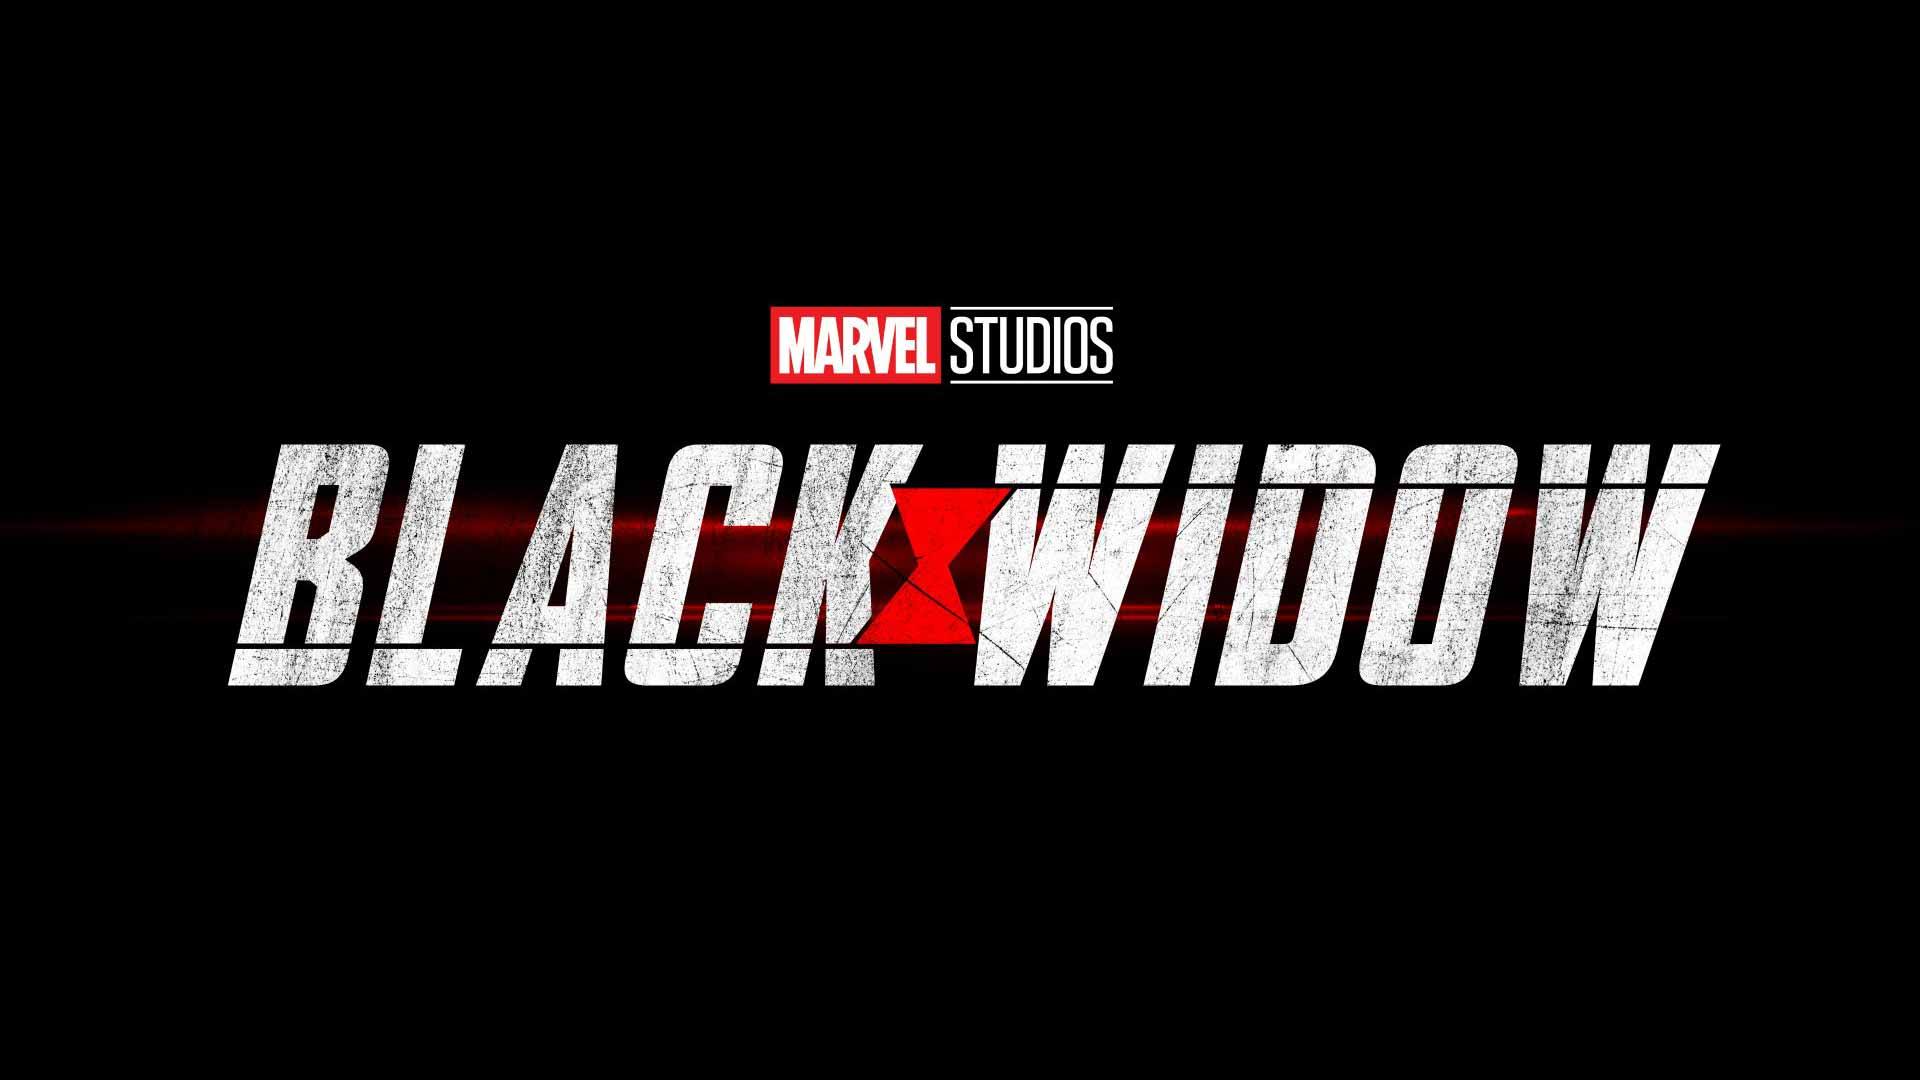 Download png Marvel Confirms Black Widow Movie For May 2020 1920x1080